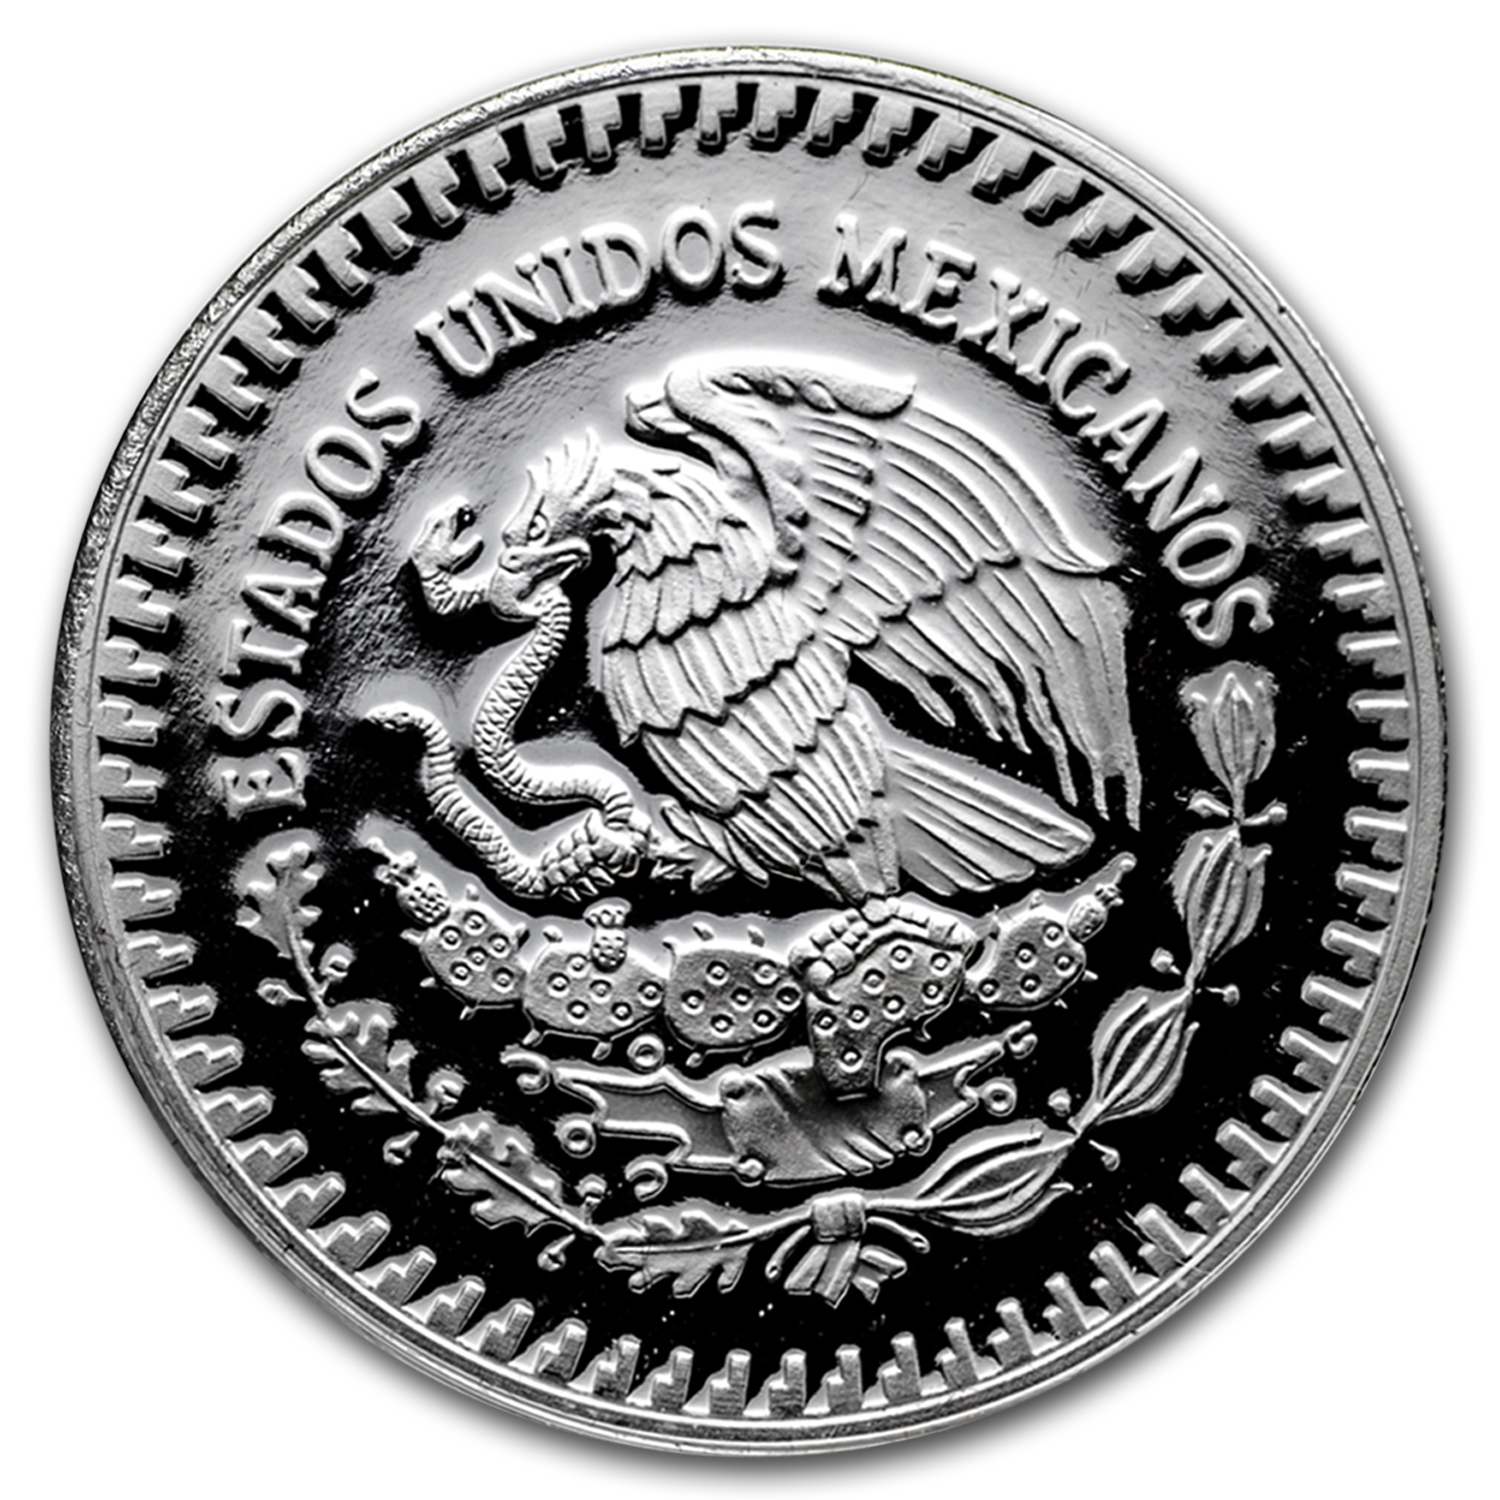 1991 Mexico 1 oz Silver Libertad Proof (w/Box & COA)